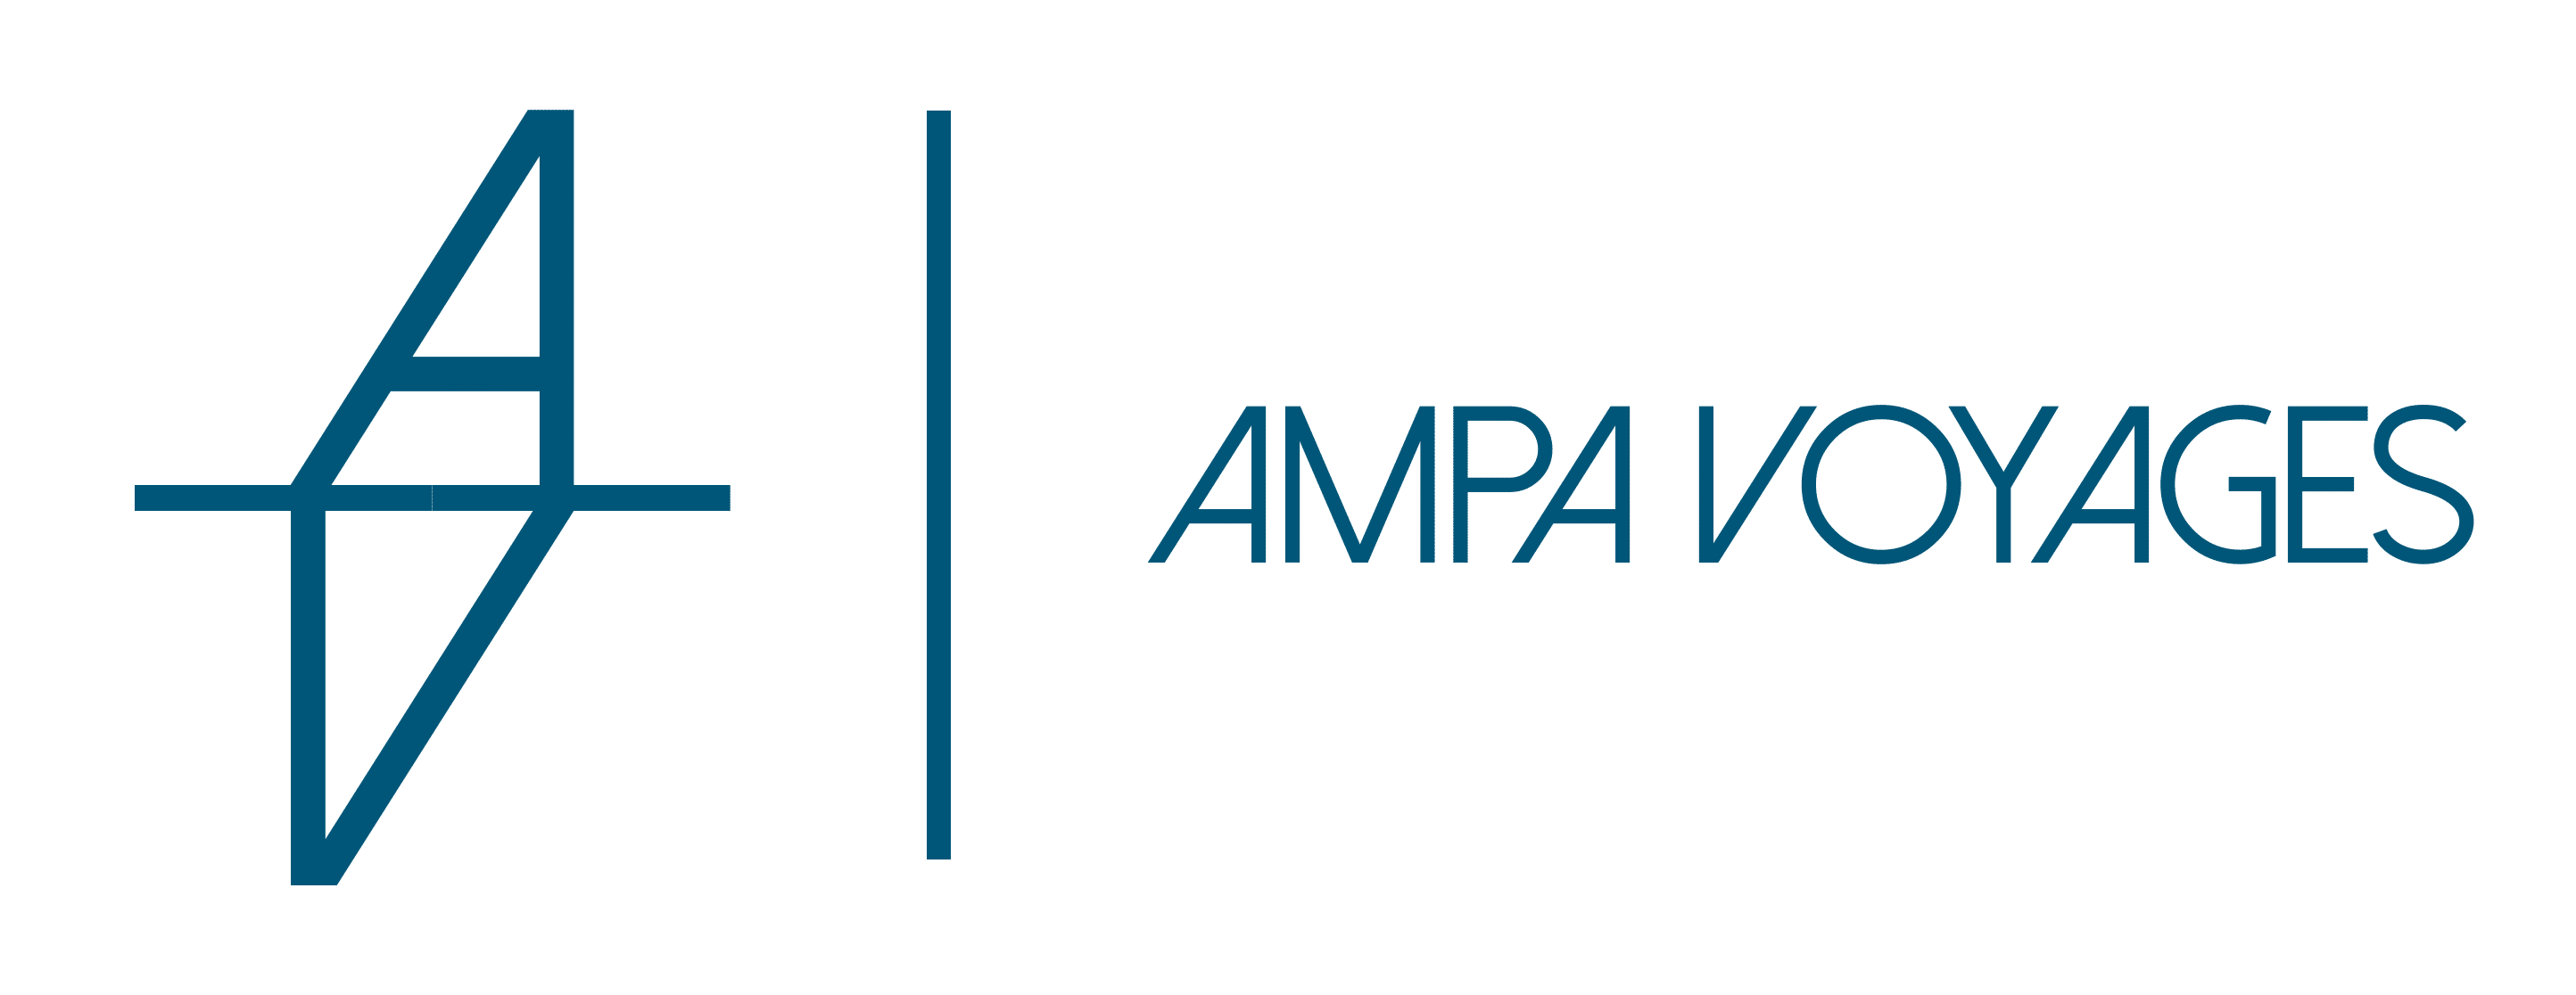 AMPA Voyages